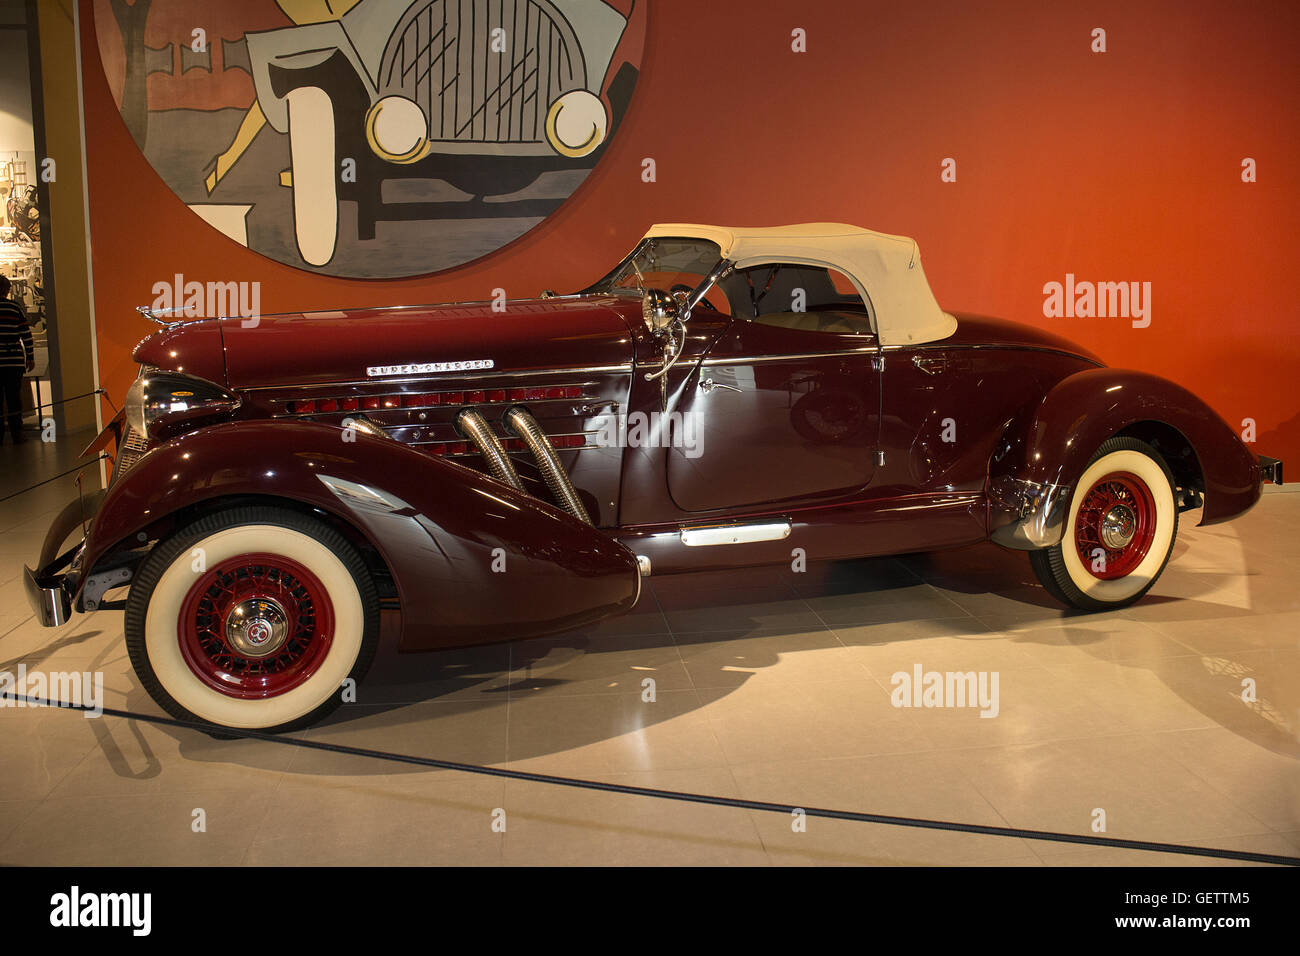 1936 Auburn 852 Speedster at the Louwman Museum, The Hague, Netherlands - Stock Image